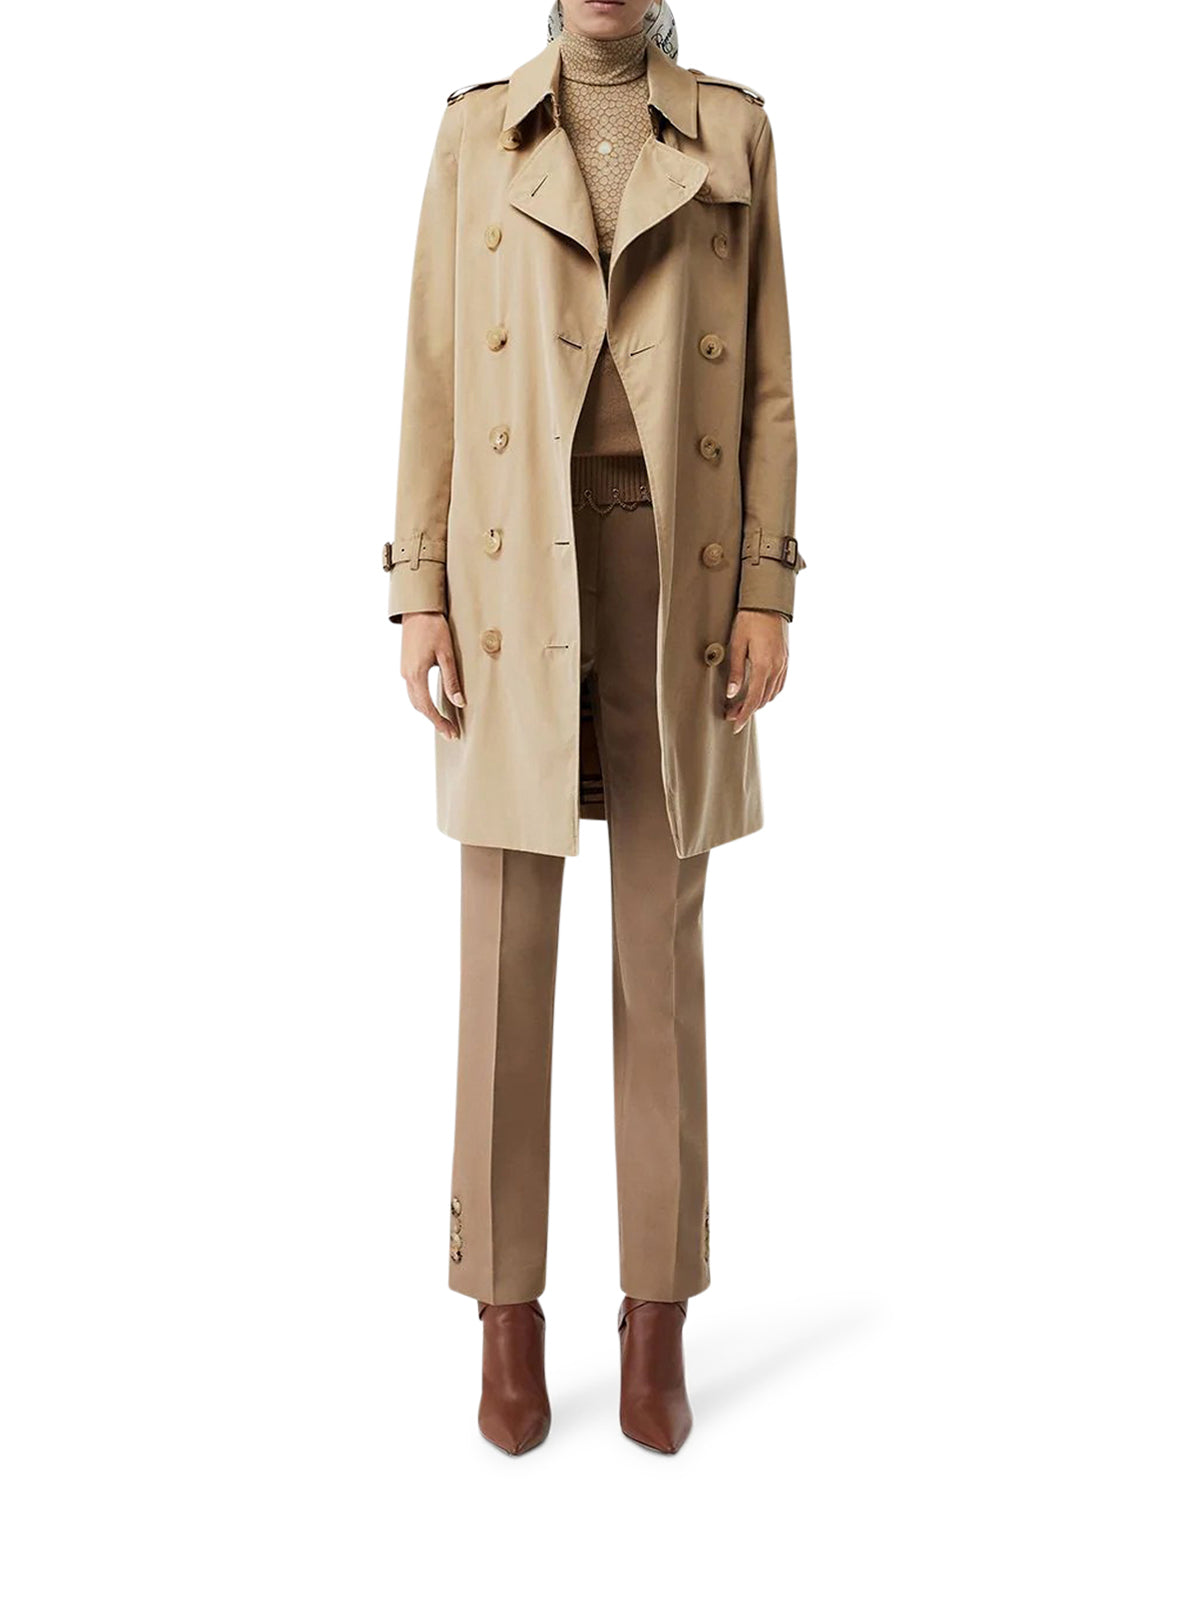 The Kensington Heritage trench coat